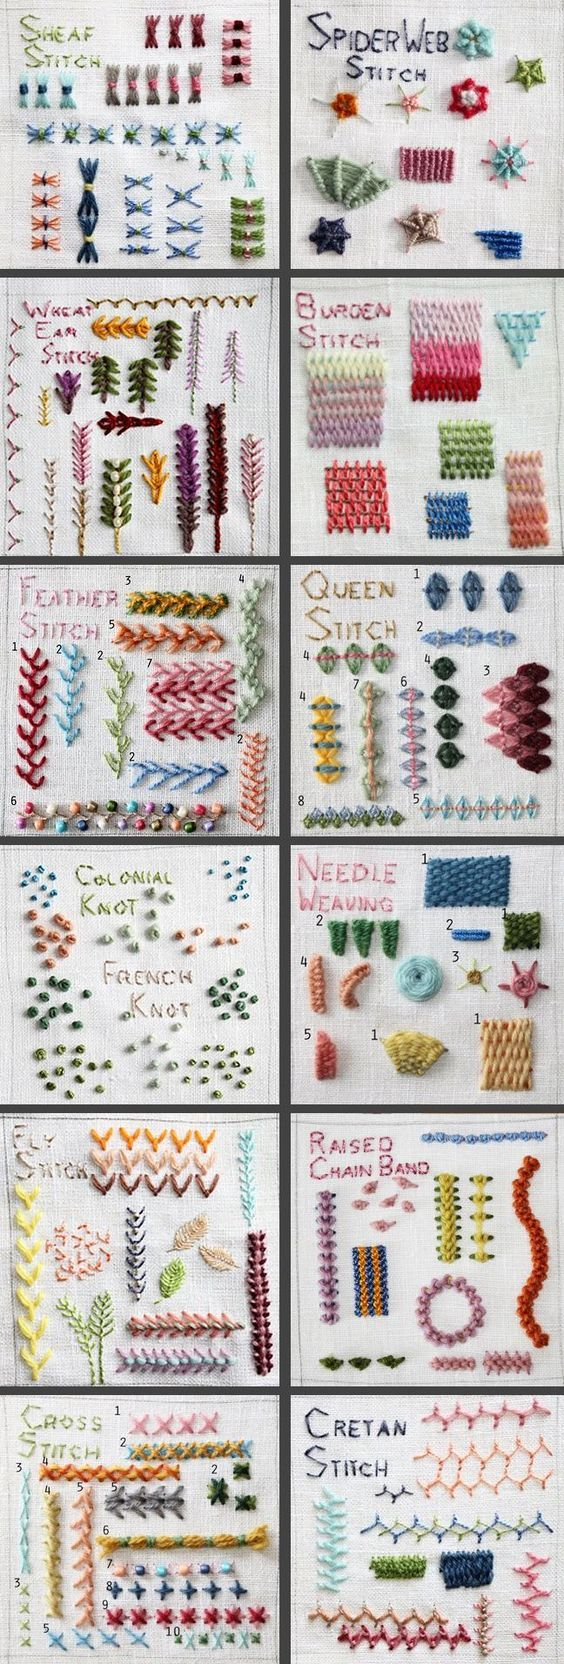 best embroidery images on pinterest embroidery diy and backpacks